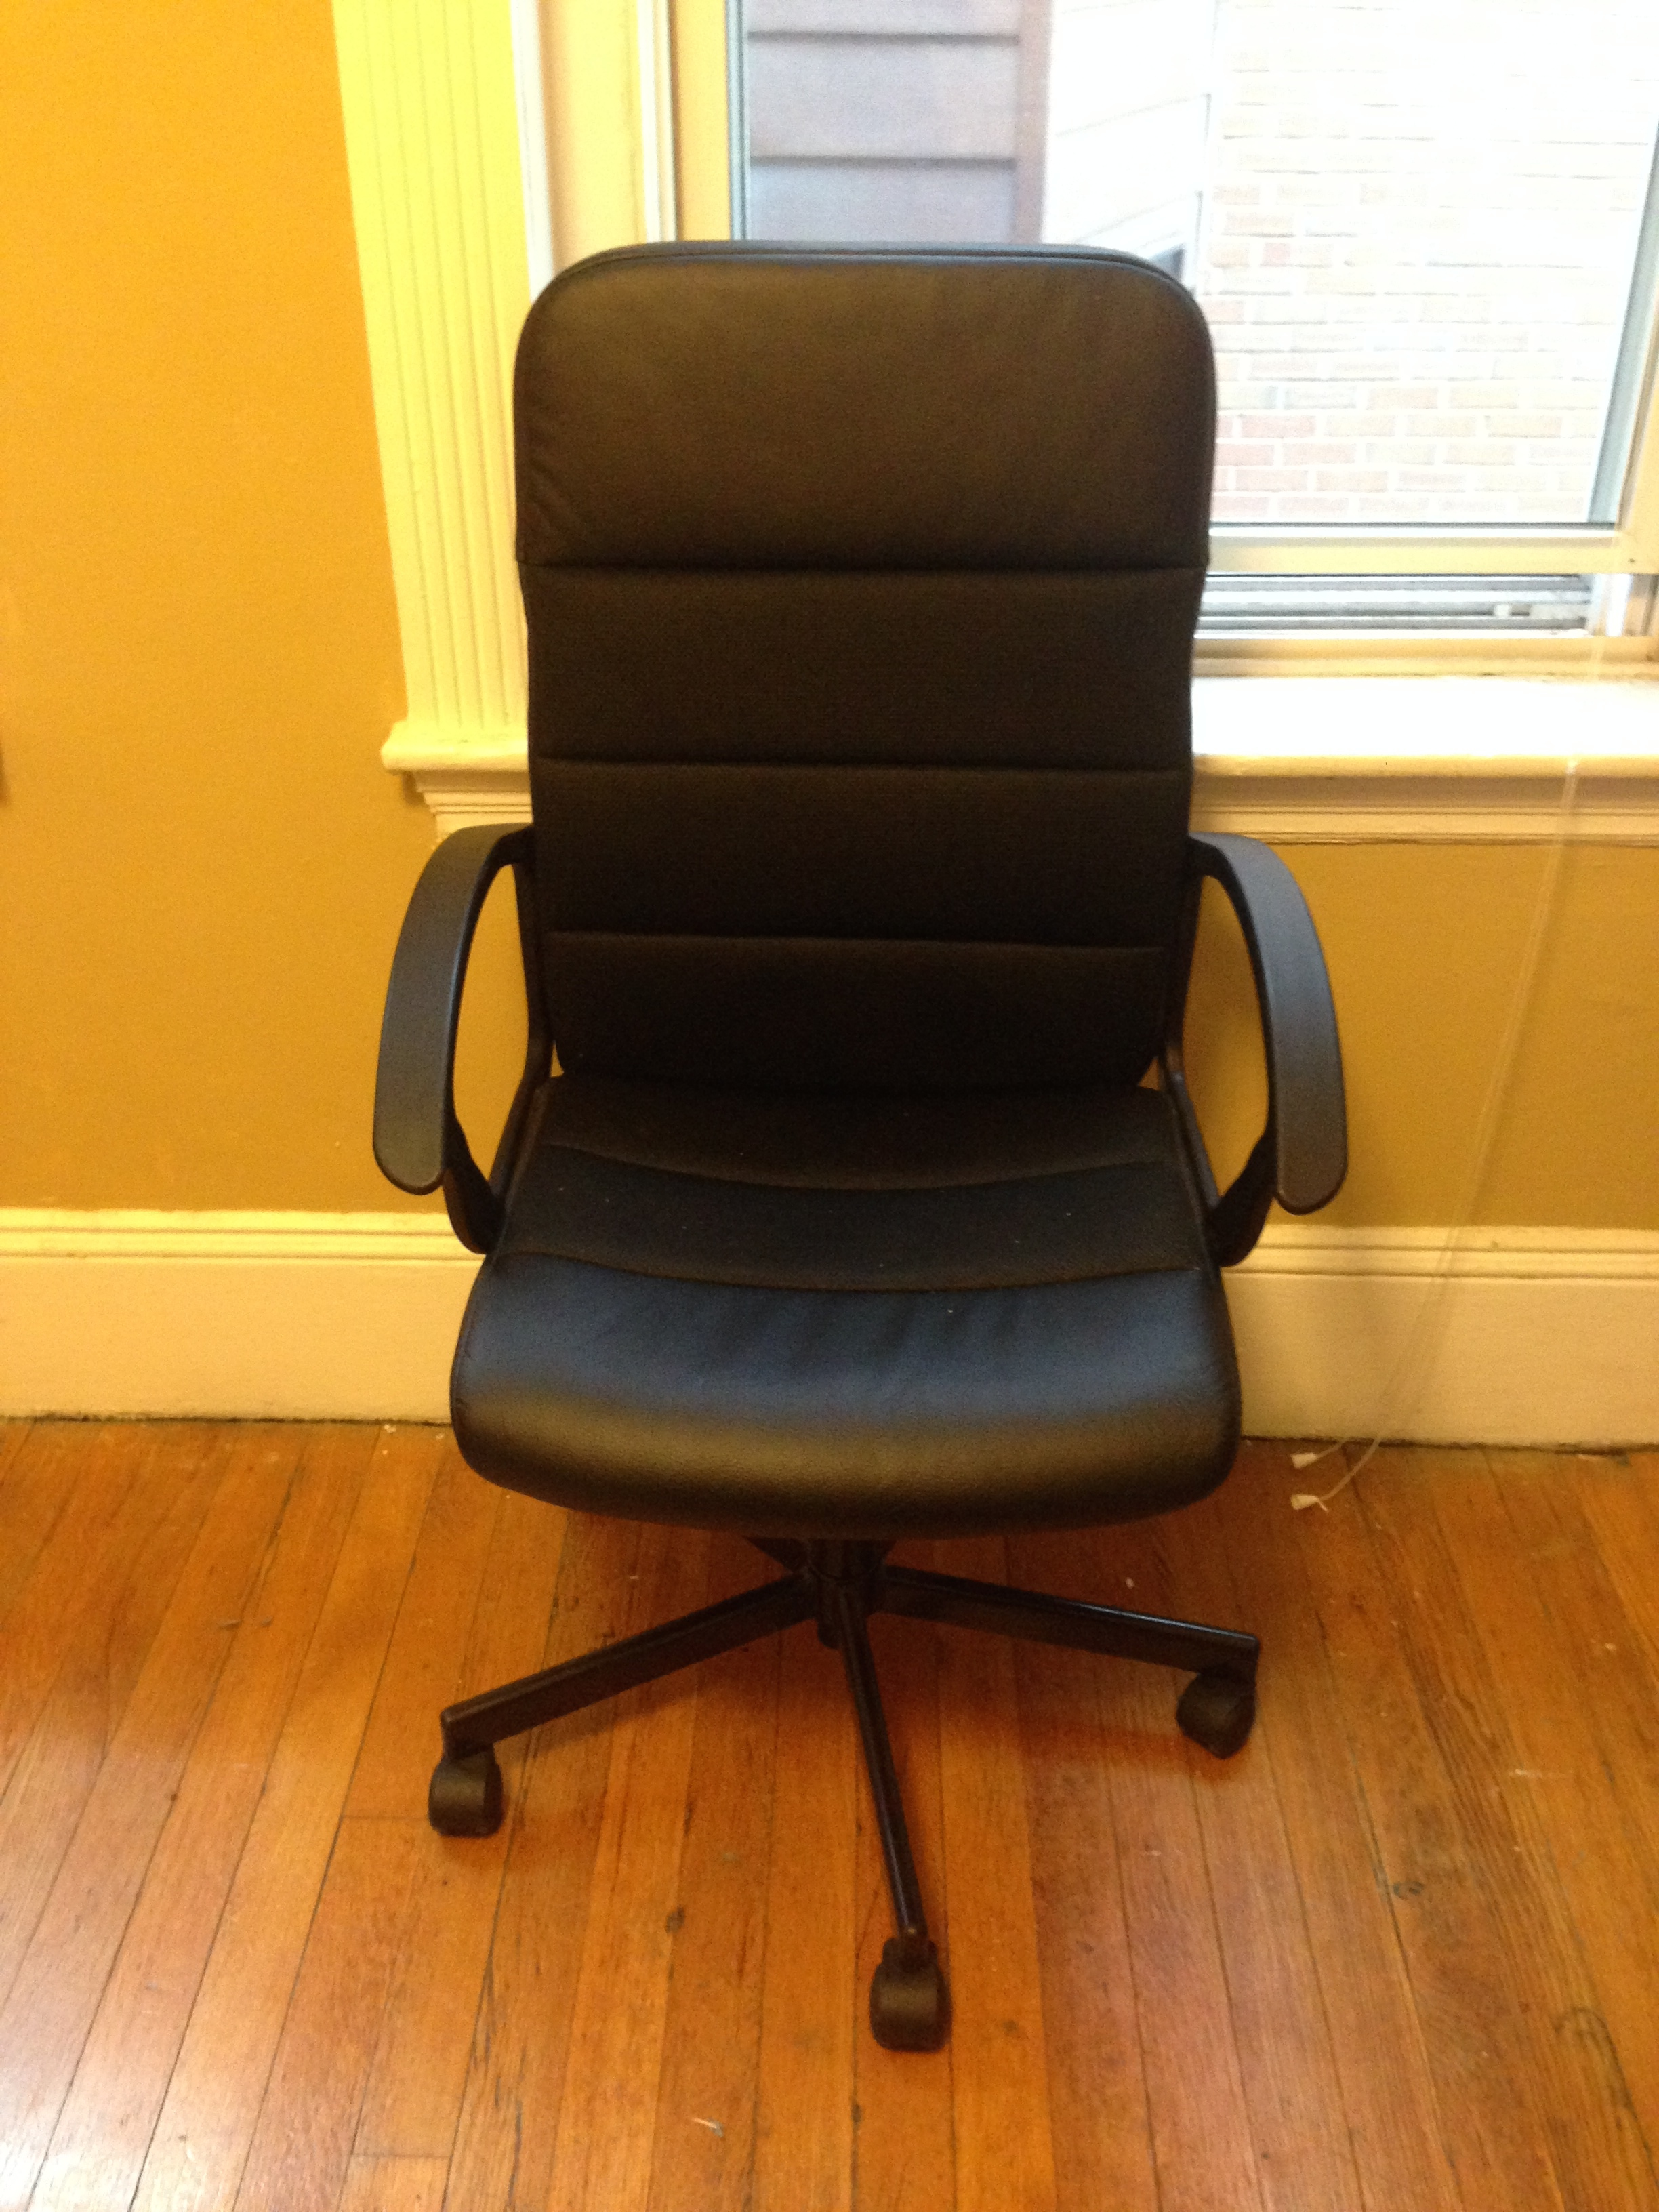 ikea recliner chairs sale vladimir kagan nautilus chair 50 off black fingal swivel 20  furniture